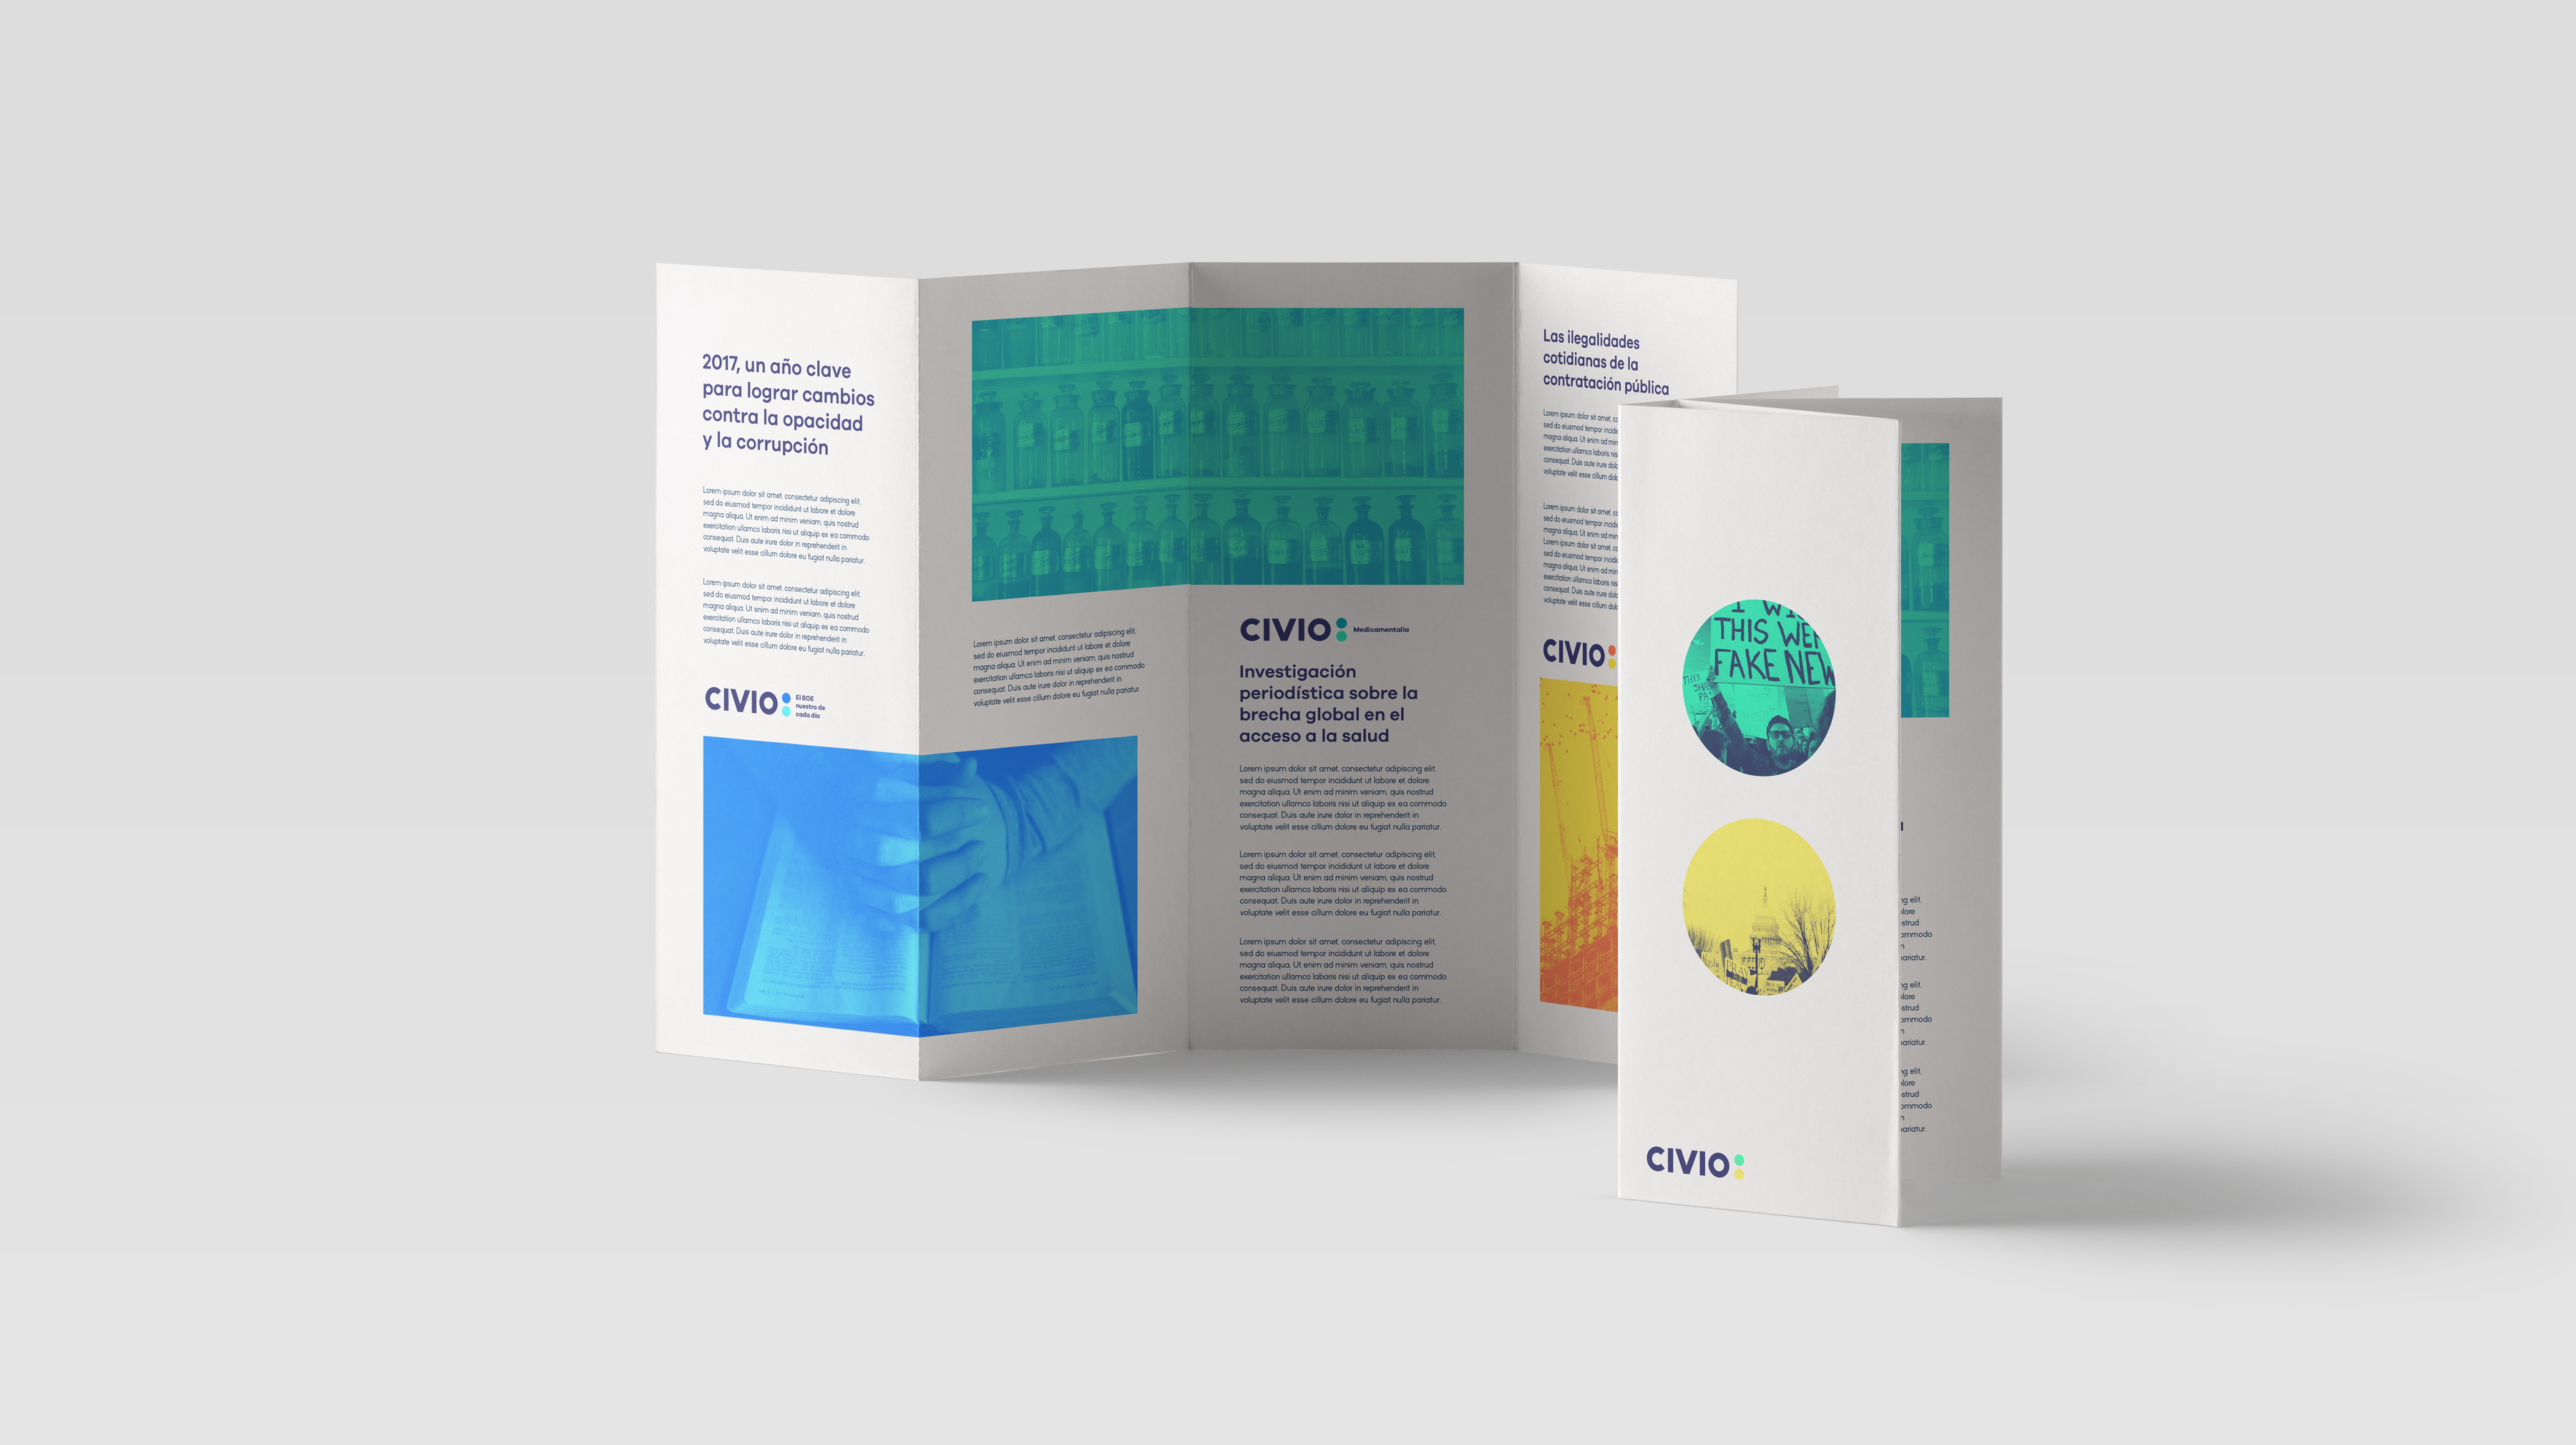 Civio Branding by The Woork Co